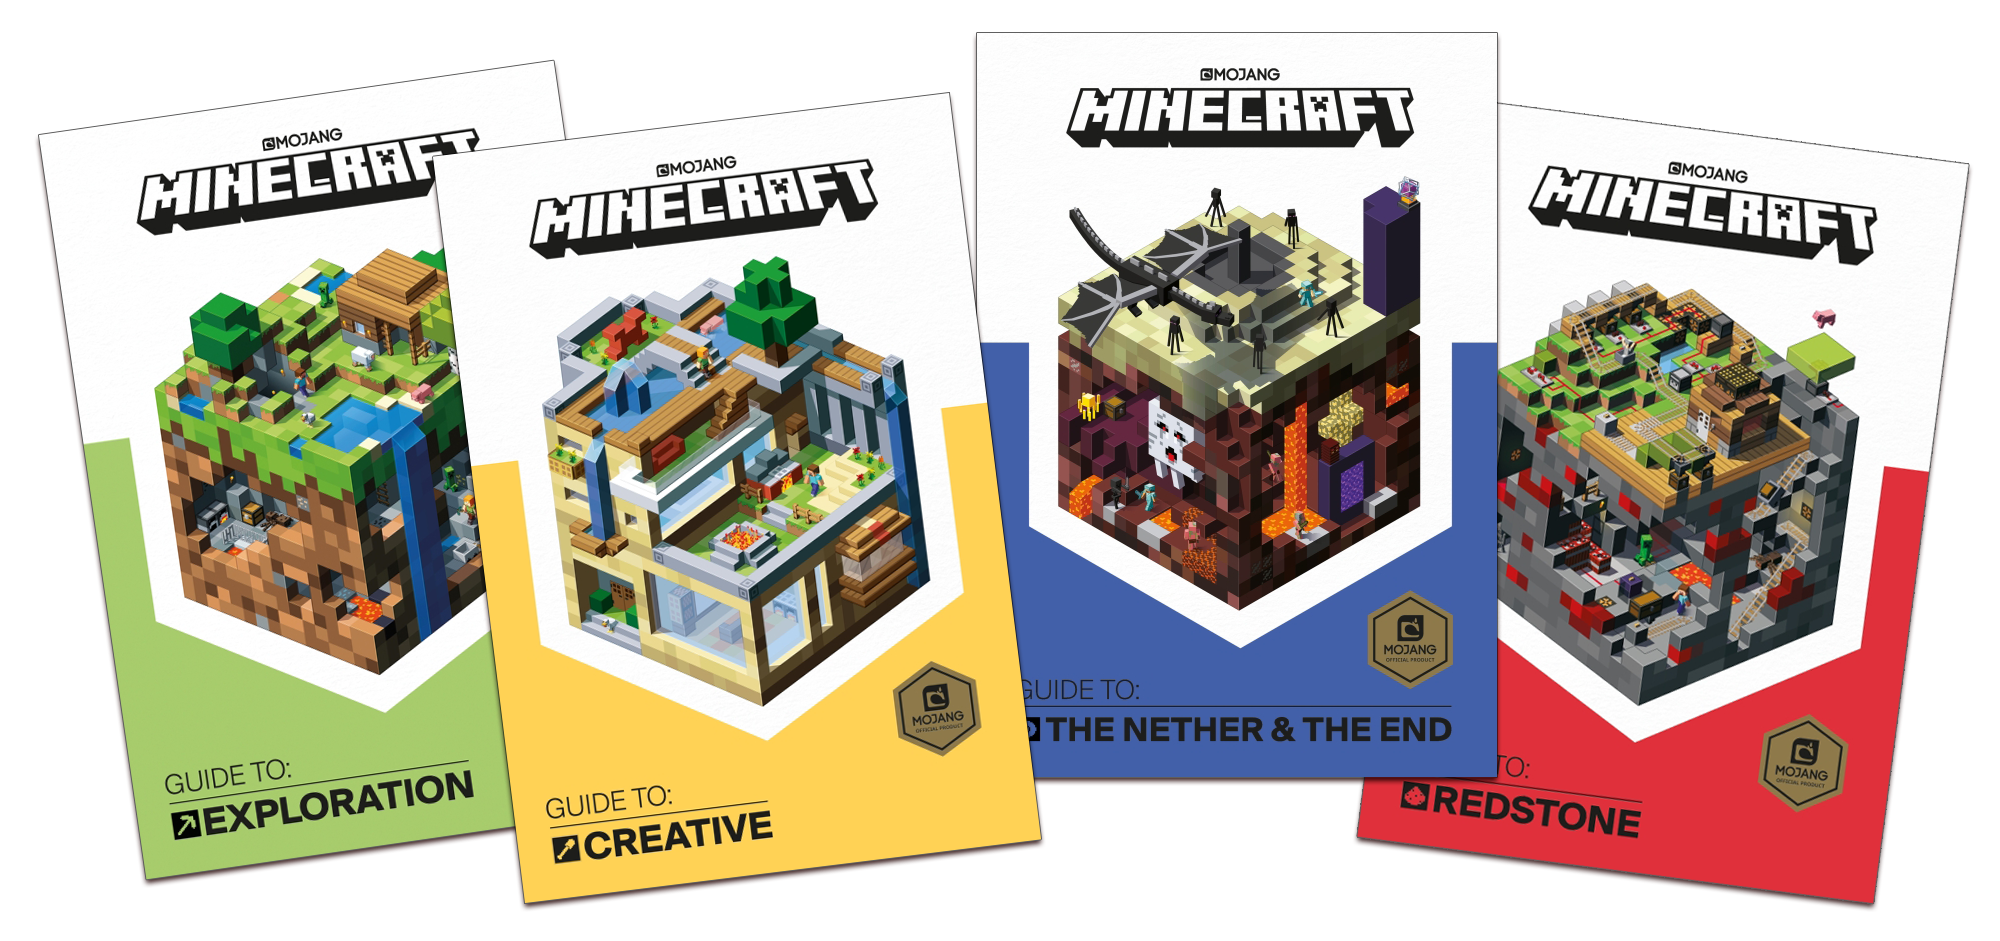 mojang releases new official minecraft books gumbyblockhead com rh gumbyblockhead com minecraft guide book xbox minecraft guide book for pe